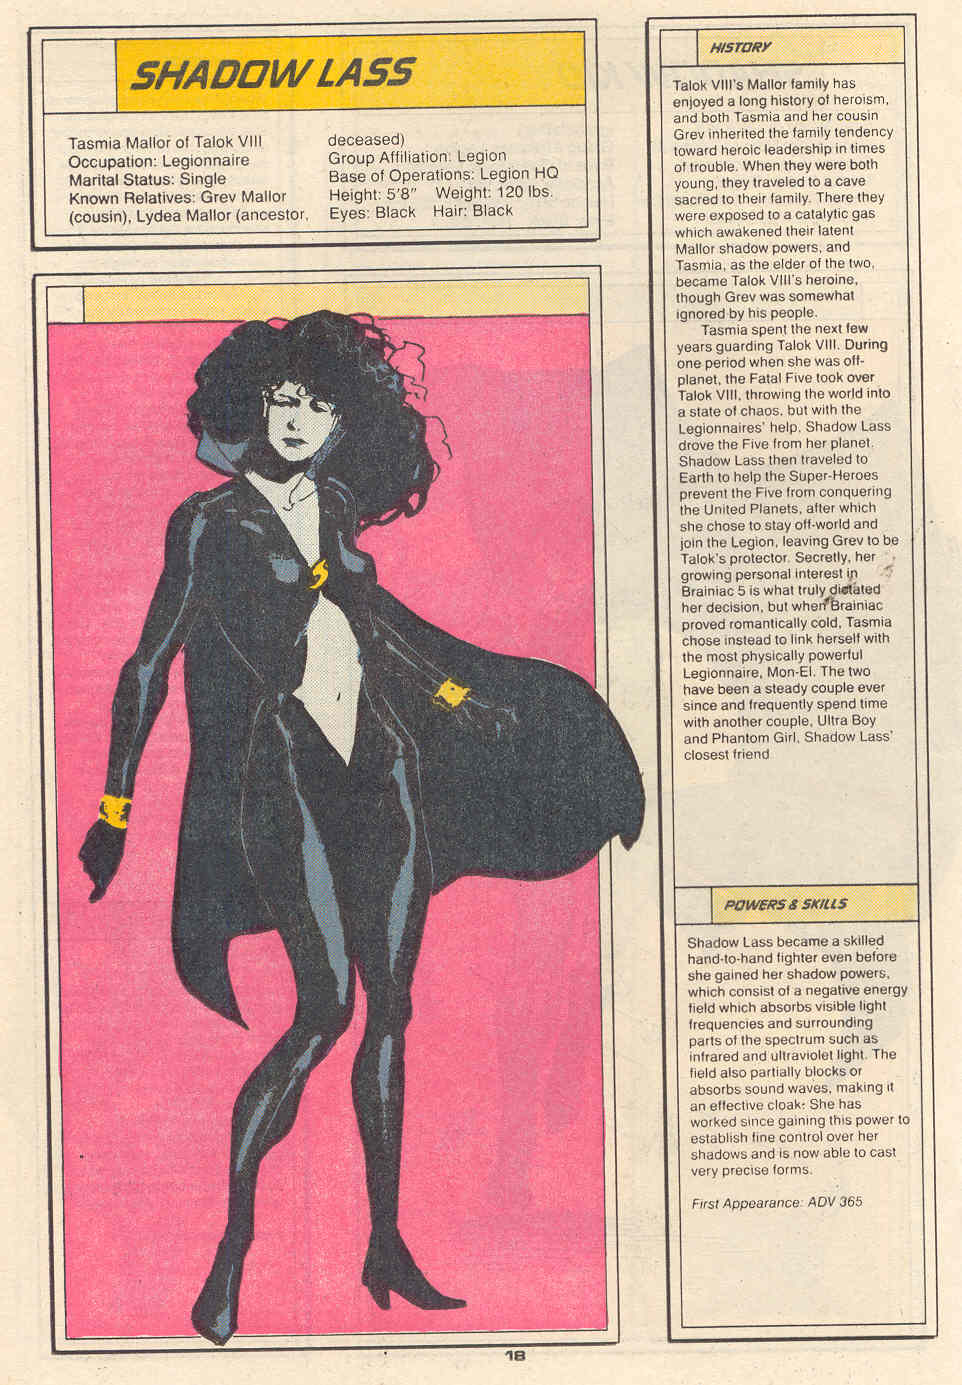 Shadow Lass by Kyle Baker - Who's Who in the Legion of Super-Heroes #6